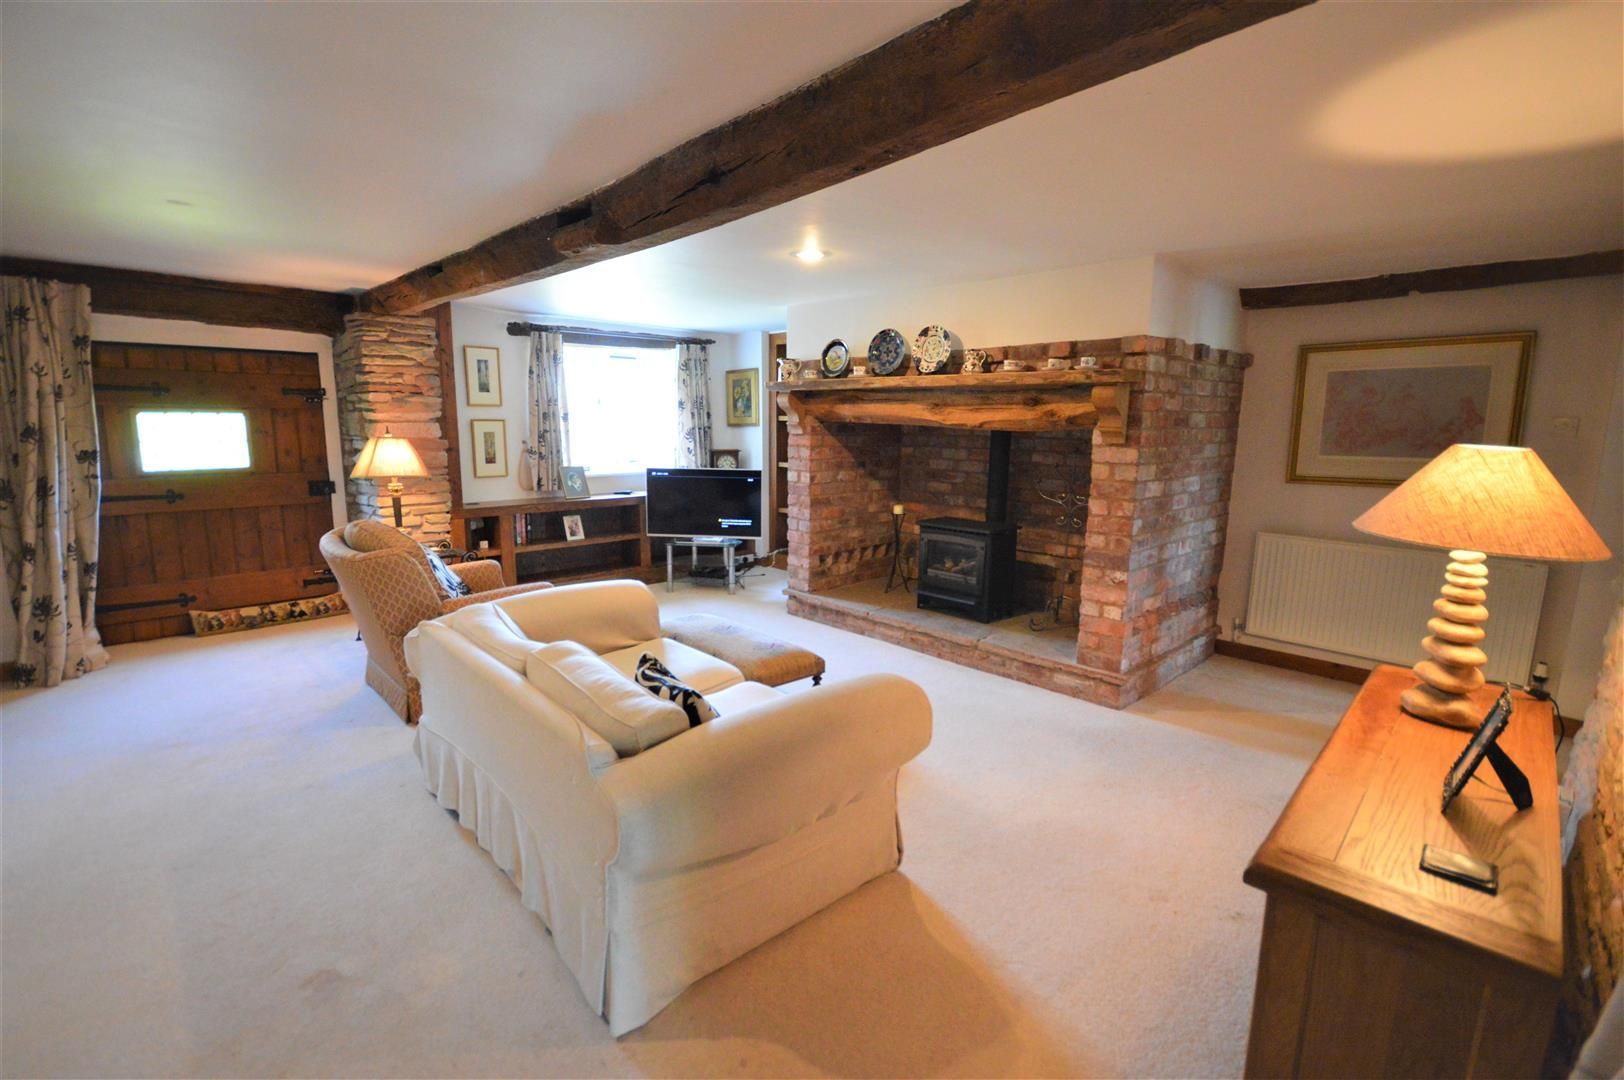 3 bed barn-conversion for sale in Stoke Prior 5